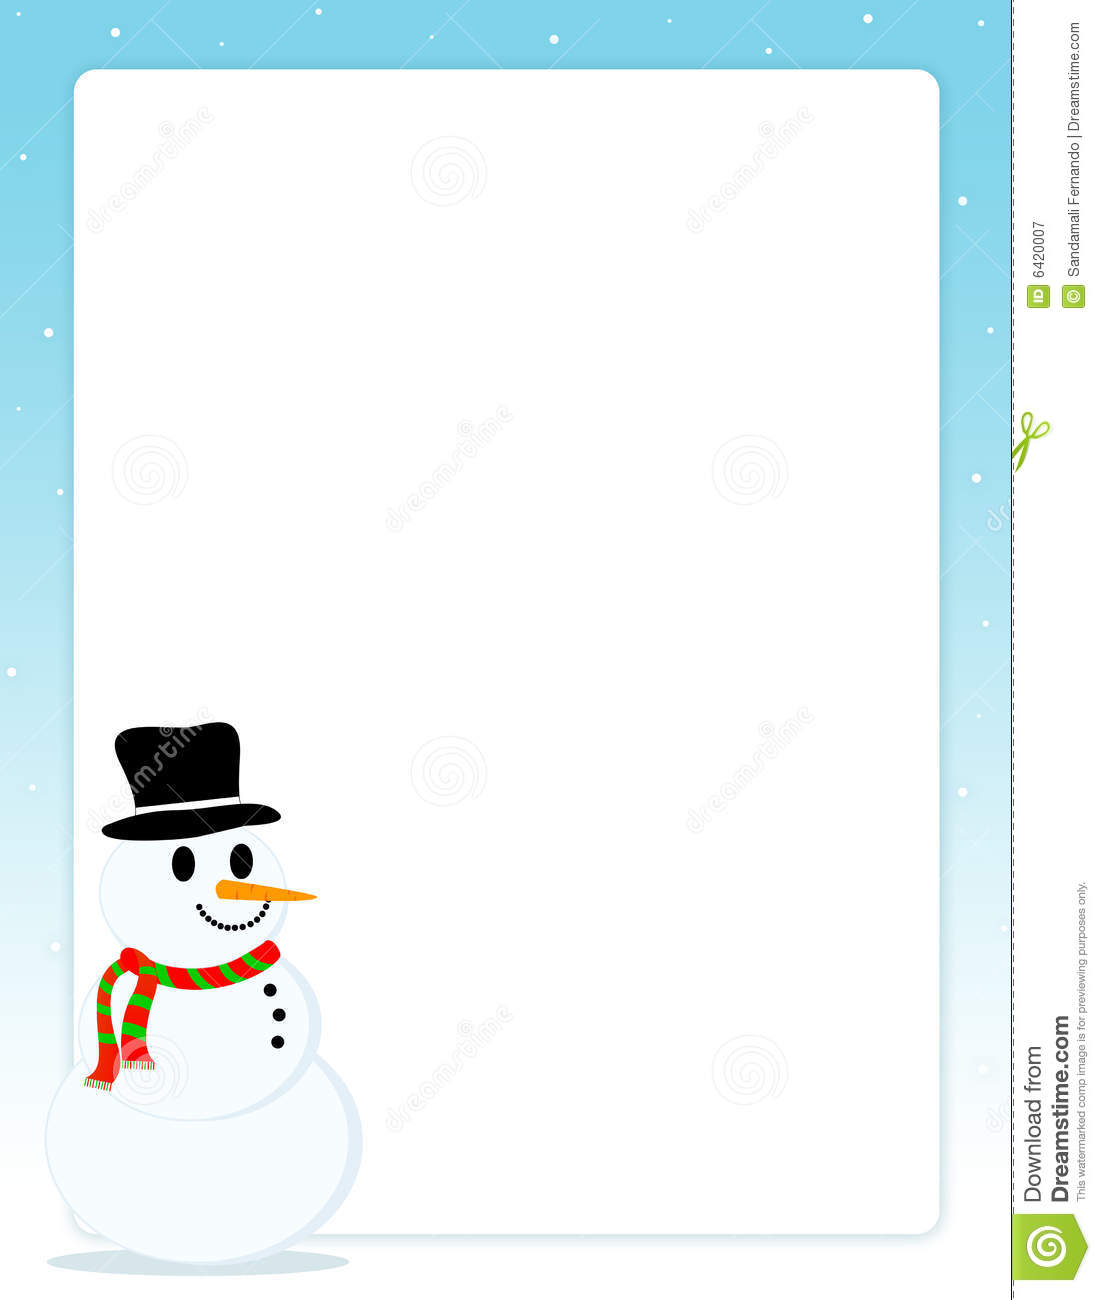 Frame clipart snowman Image Snowman China C6m3ud With